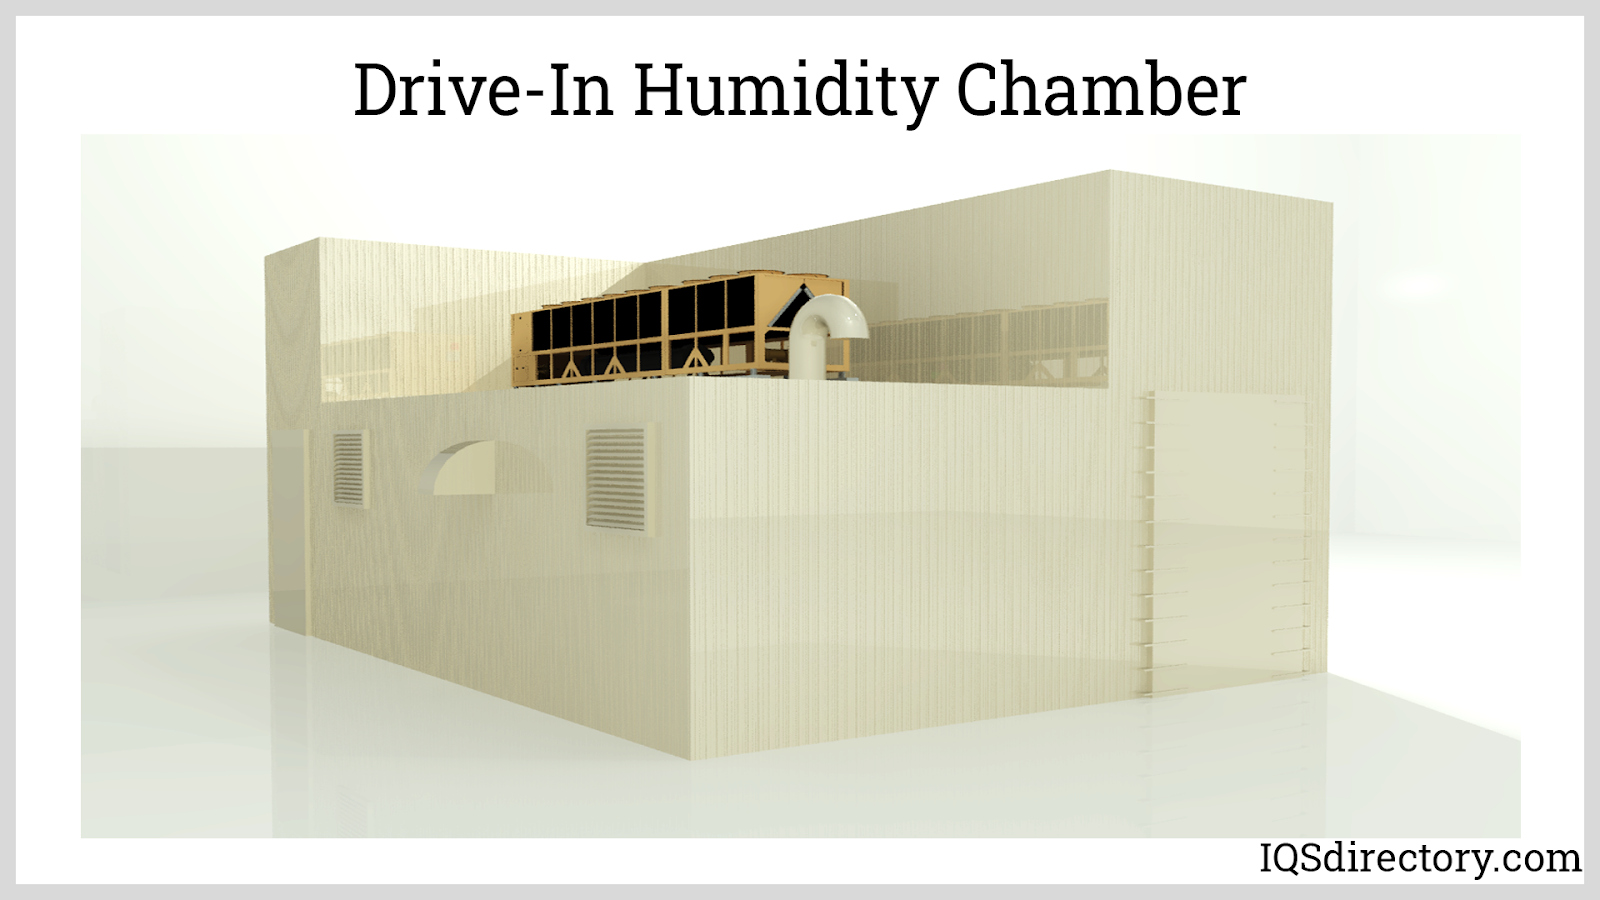 Drive-In Humidity Chamber